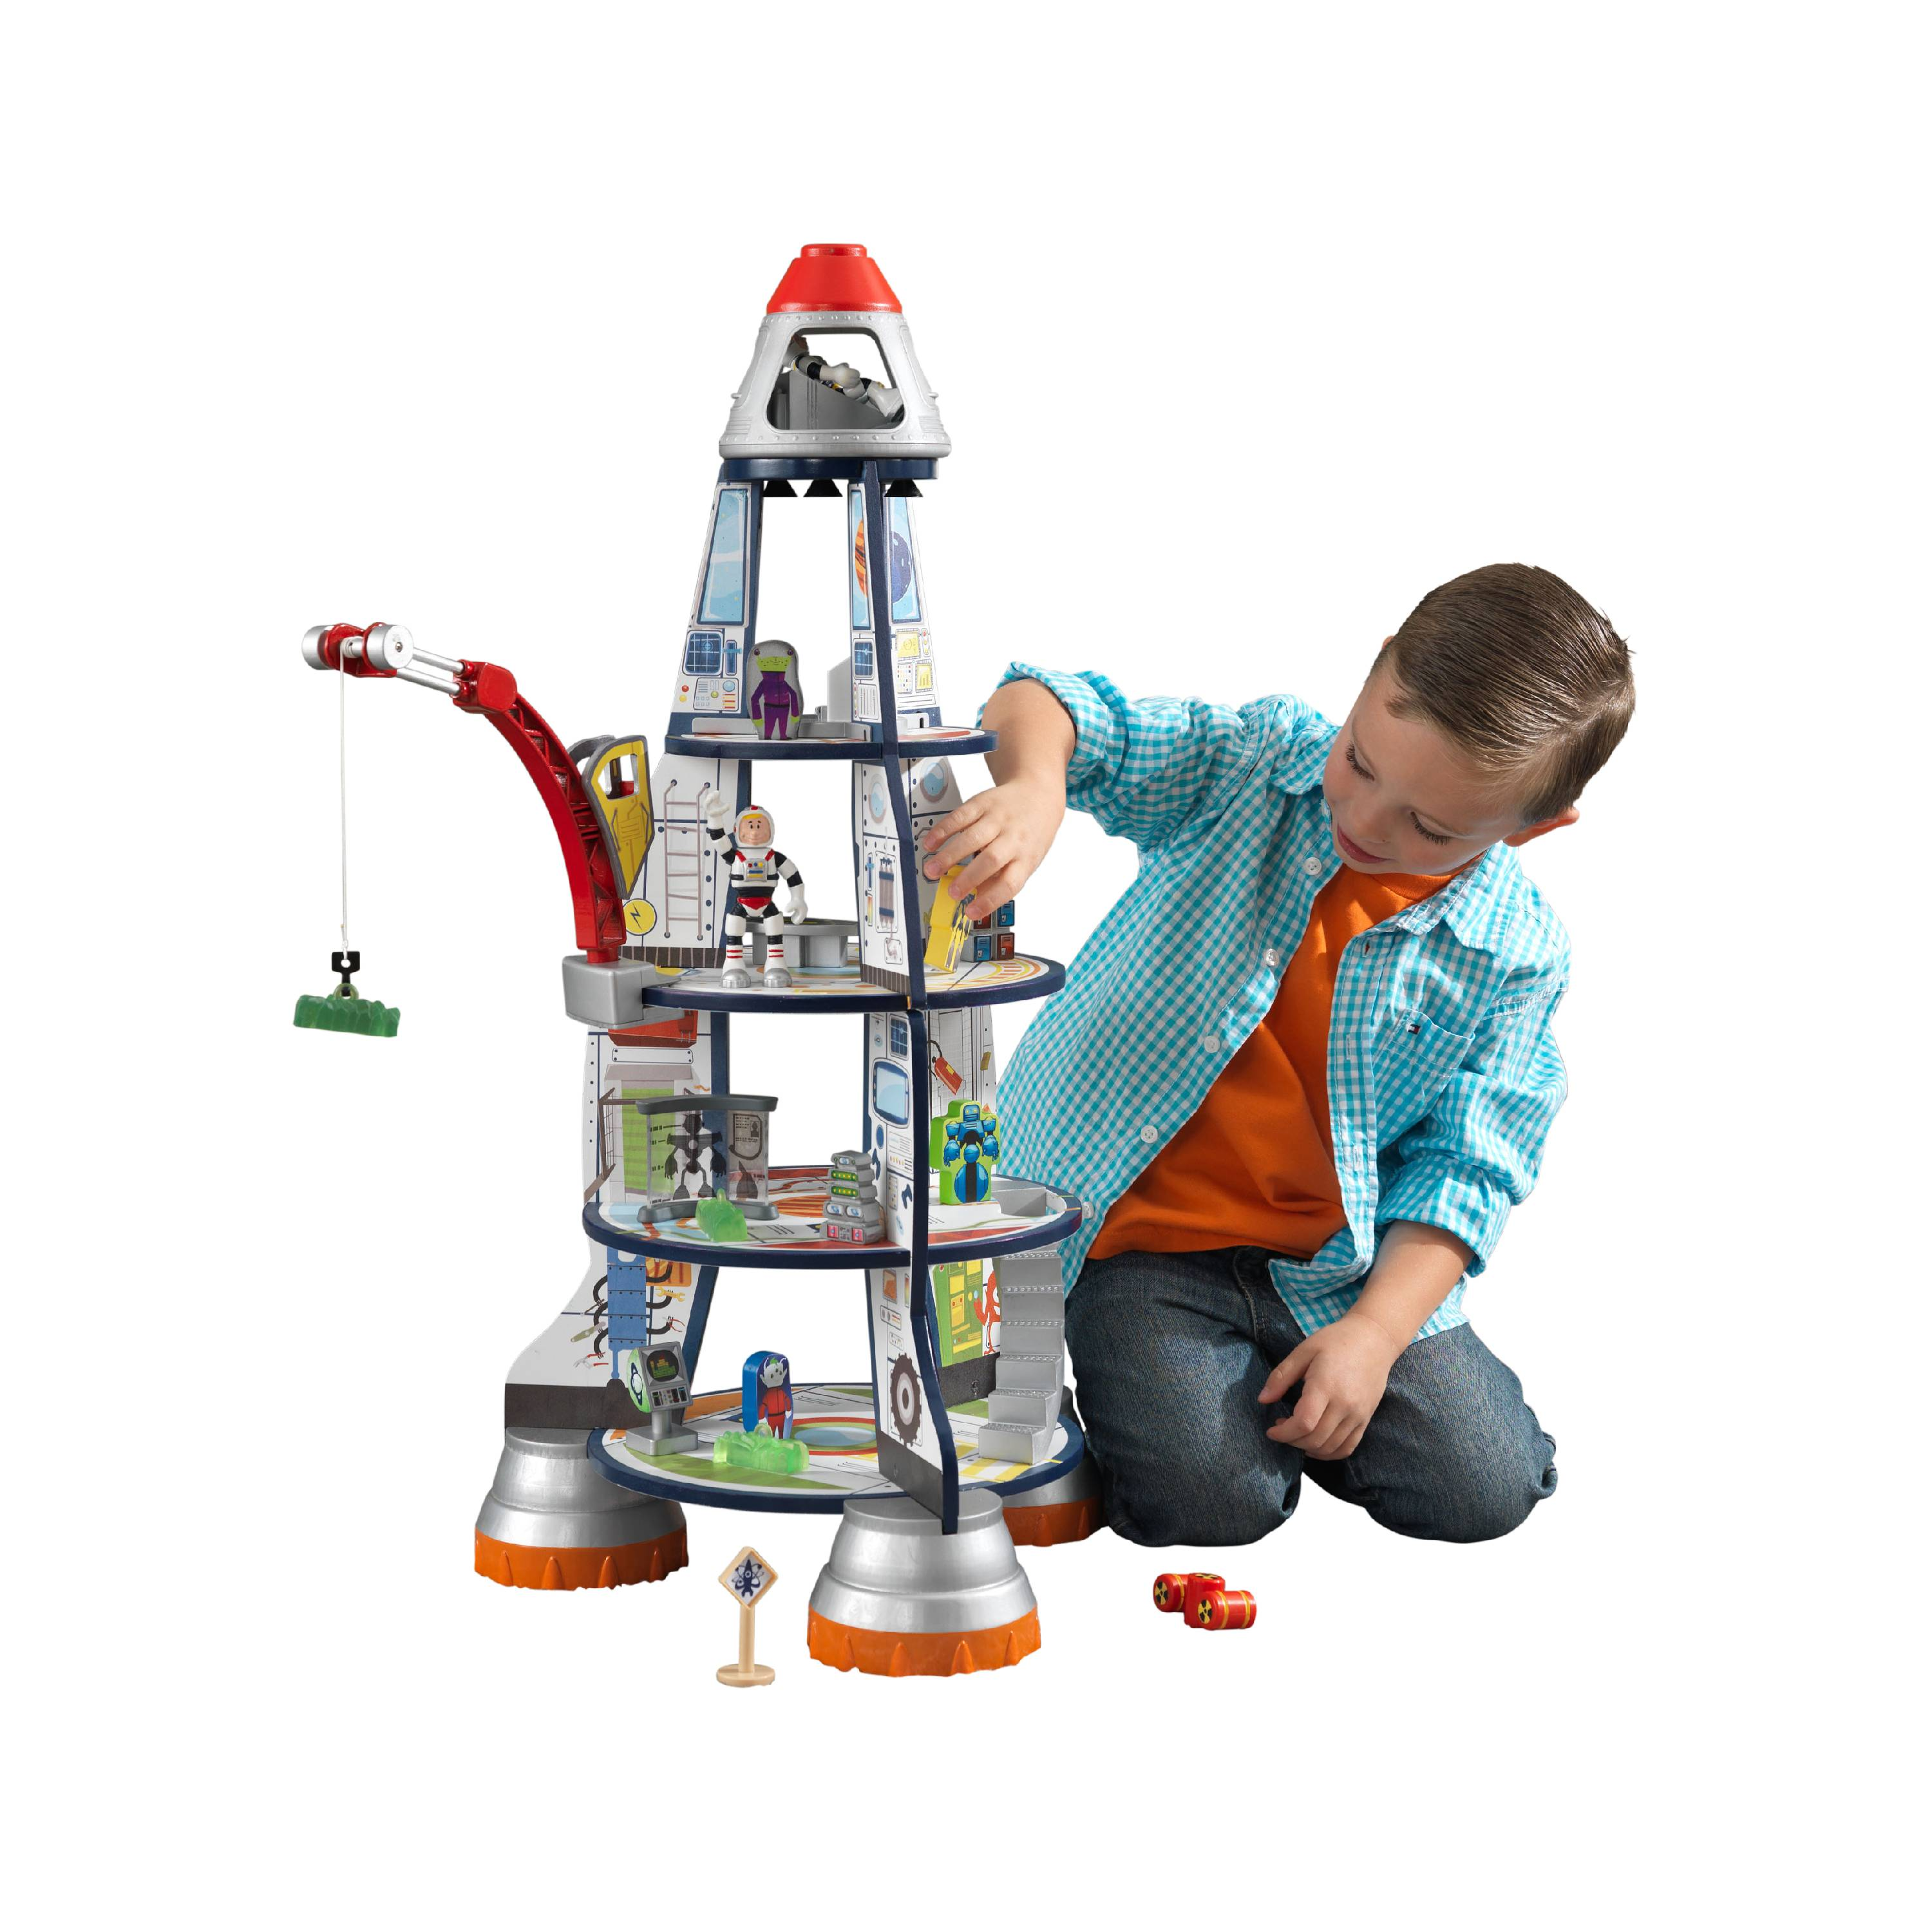 Walmart.com deals on KidKraft Wooden 3-Section Rocket Ship Playset with Moving Crane